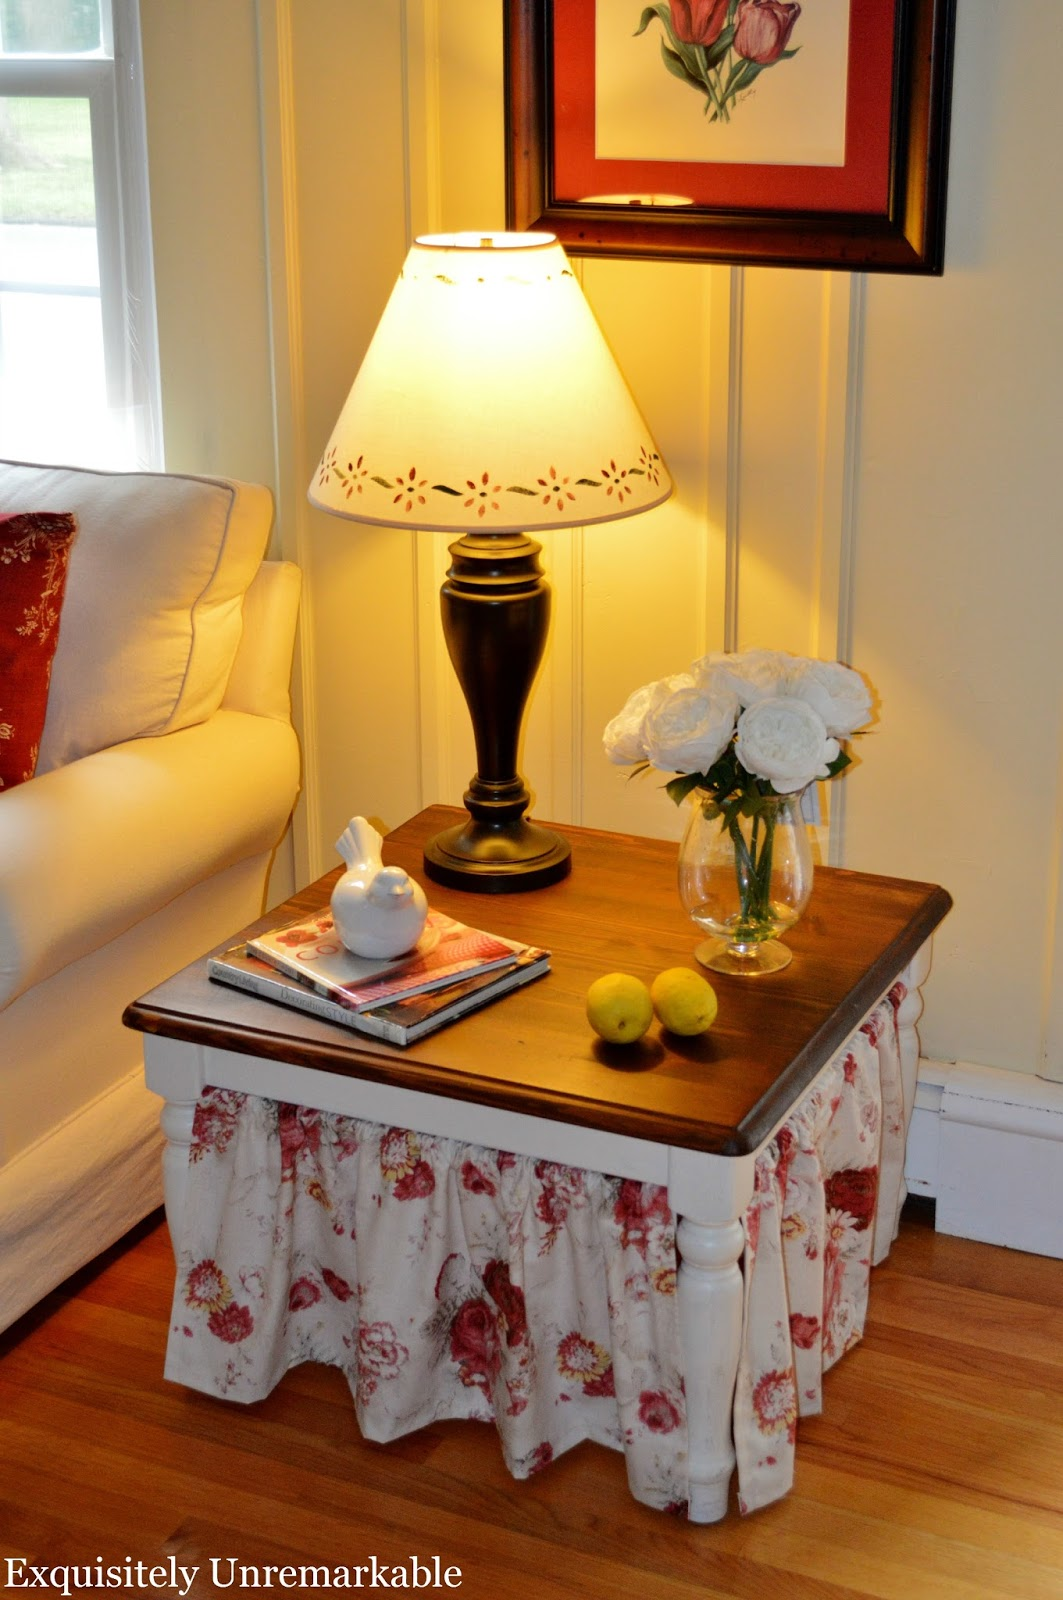 http://www.exquisitelyunremarkable.com/2014/07/easy-skirted-table-tutorial.html